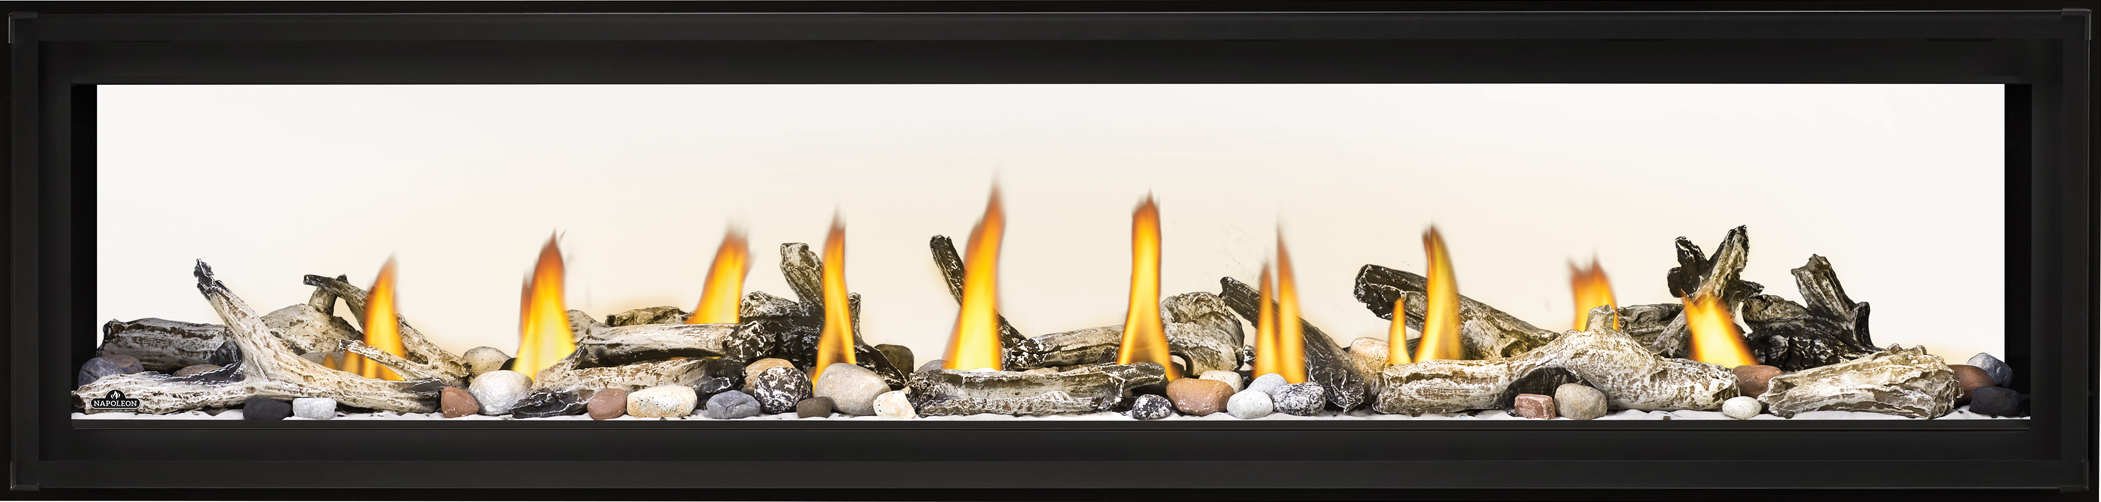 Luxuria LVX74ST Mineral Rock Shore Fire Beach Fire